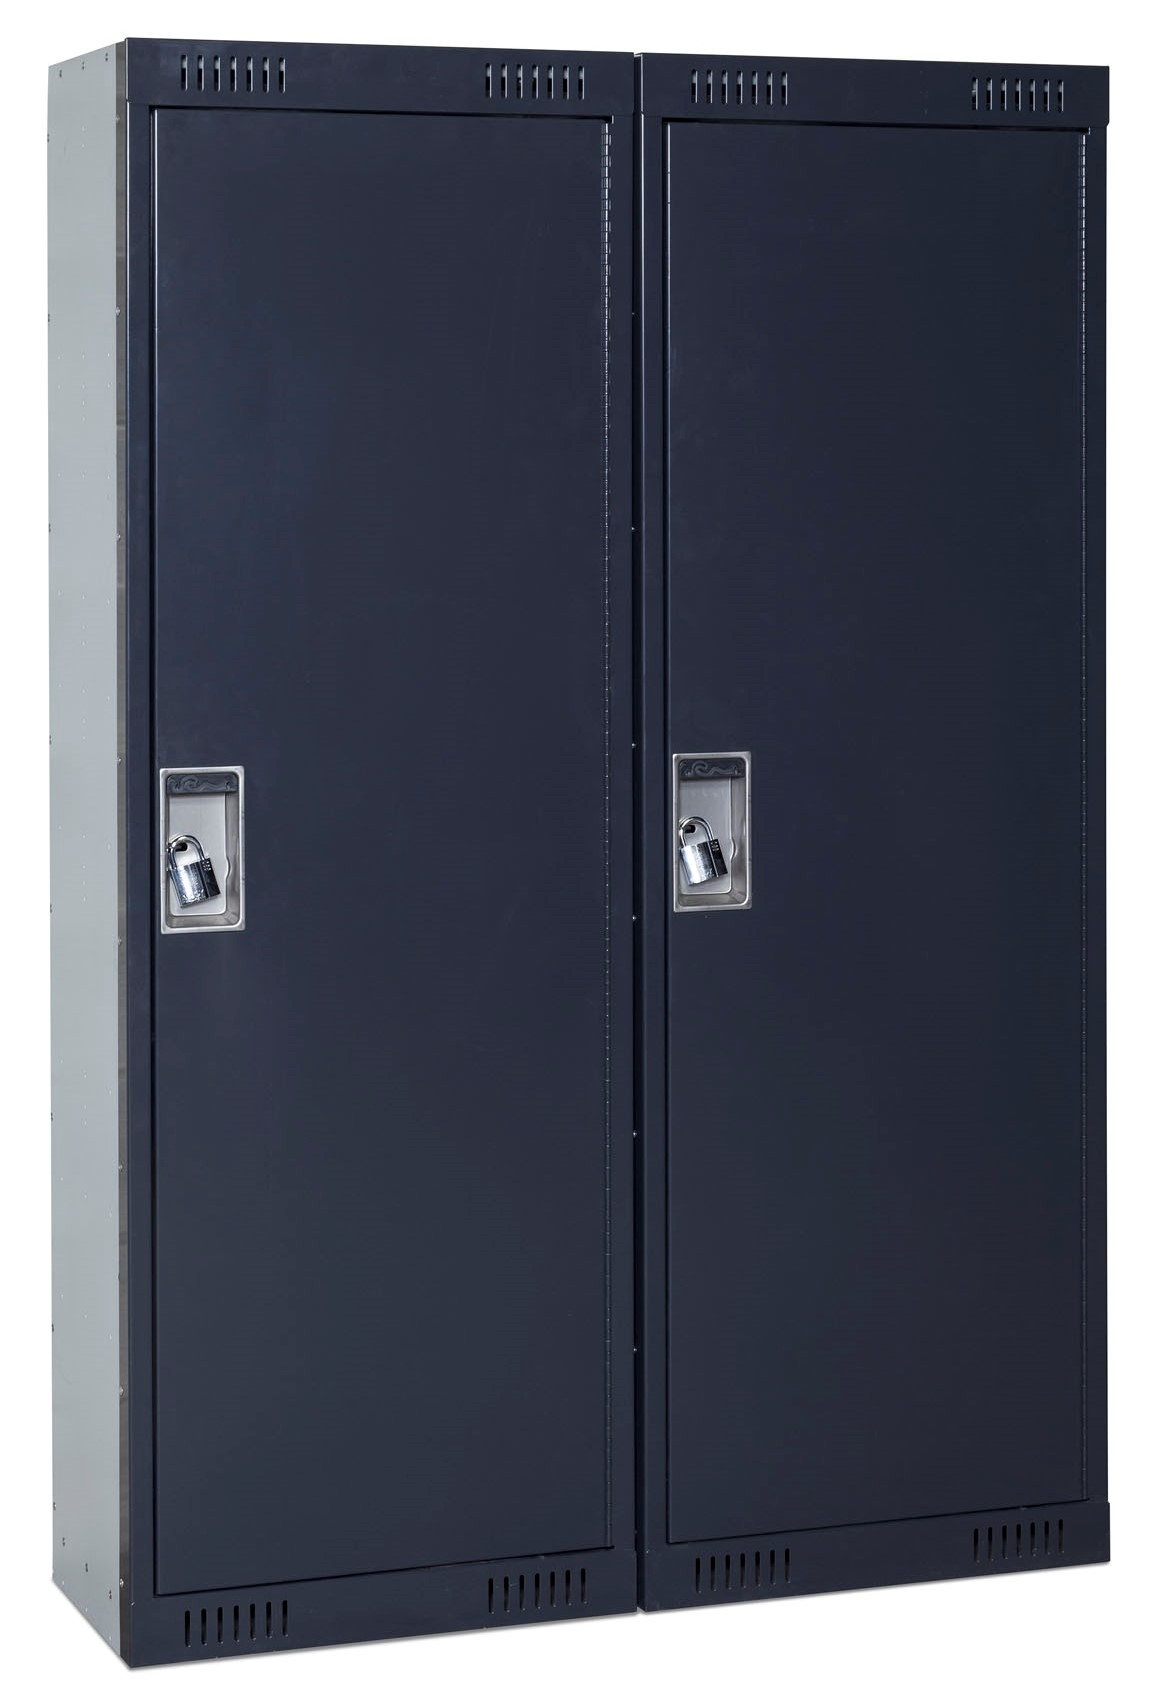 Small Arms Weapon Locker Bank - Closed